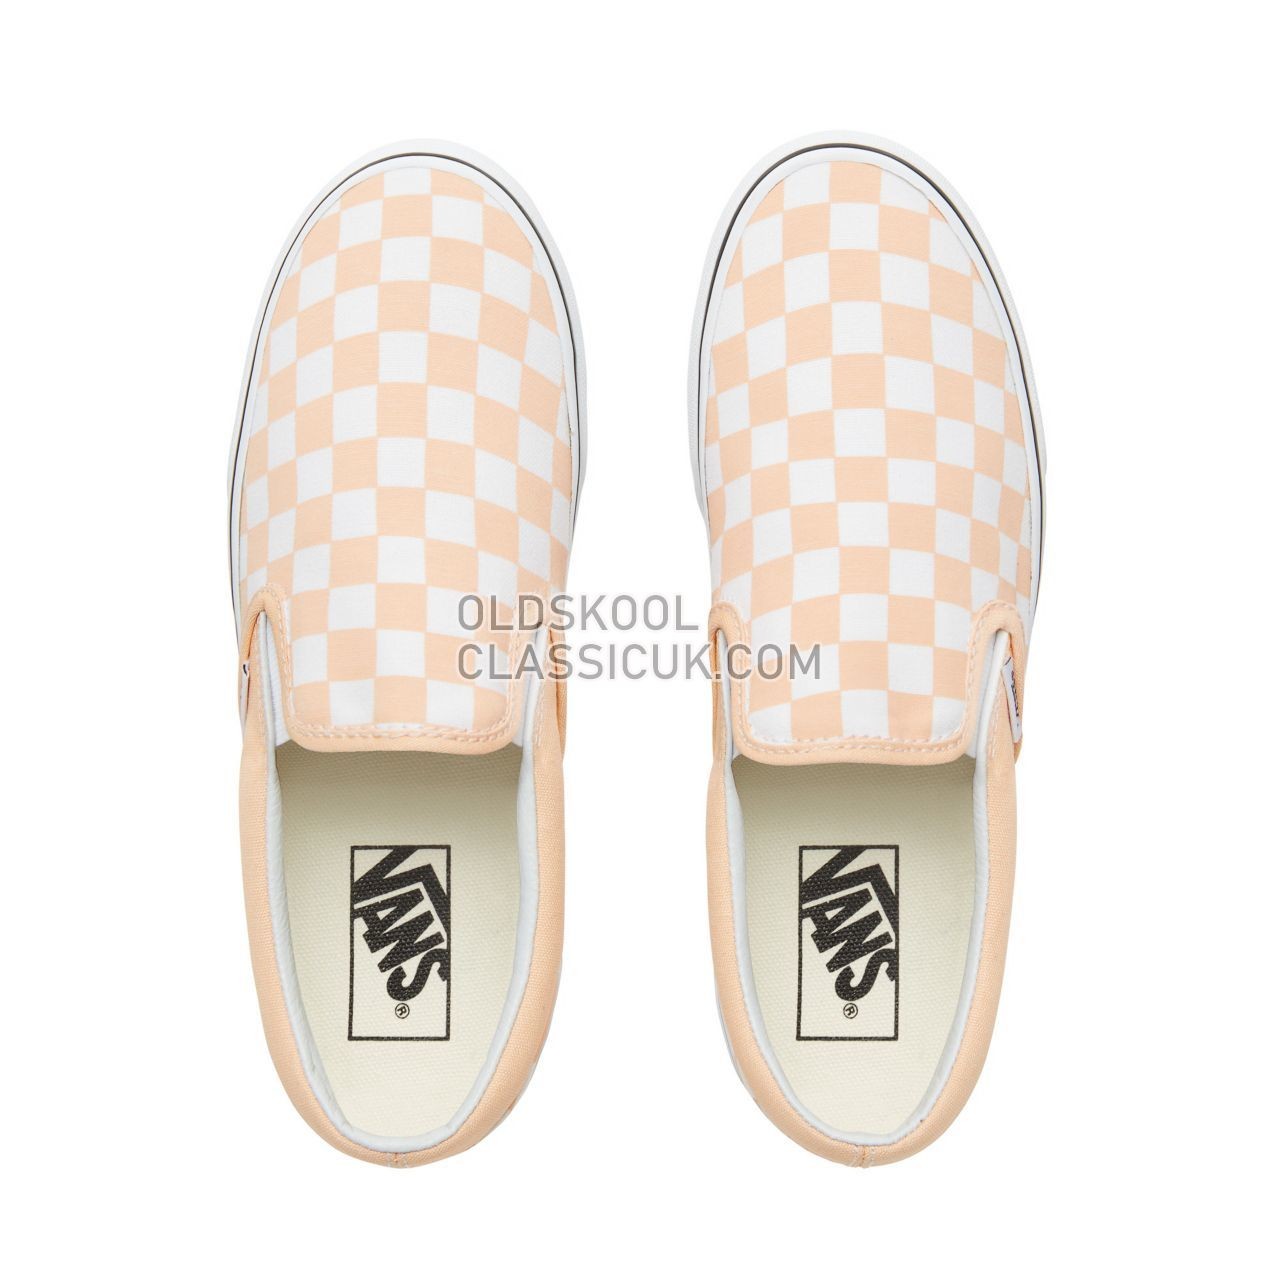 Vans Color Theory Checkerboard Classic Slip-On Sneakers (Unisex) Mens (Checkerboard) Bleached Apricot/True White VA38F7U77 Shoes